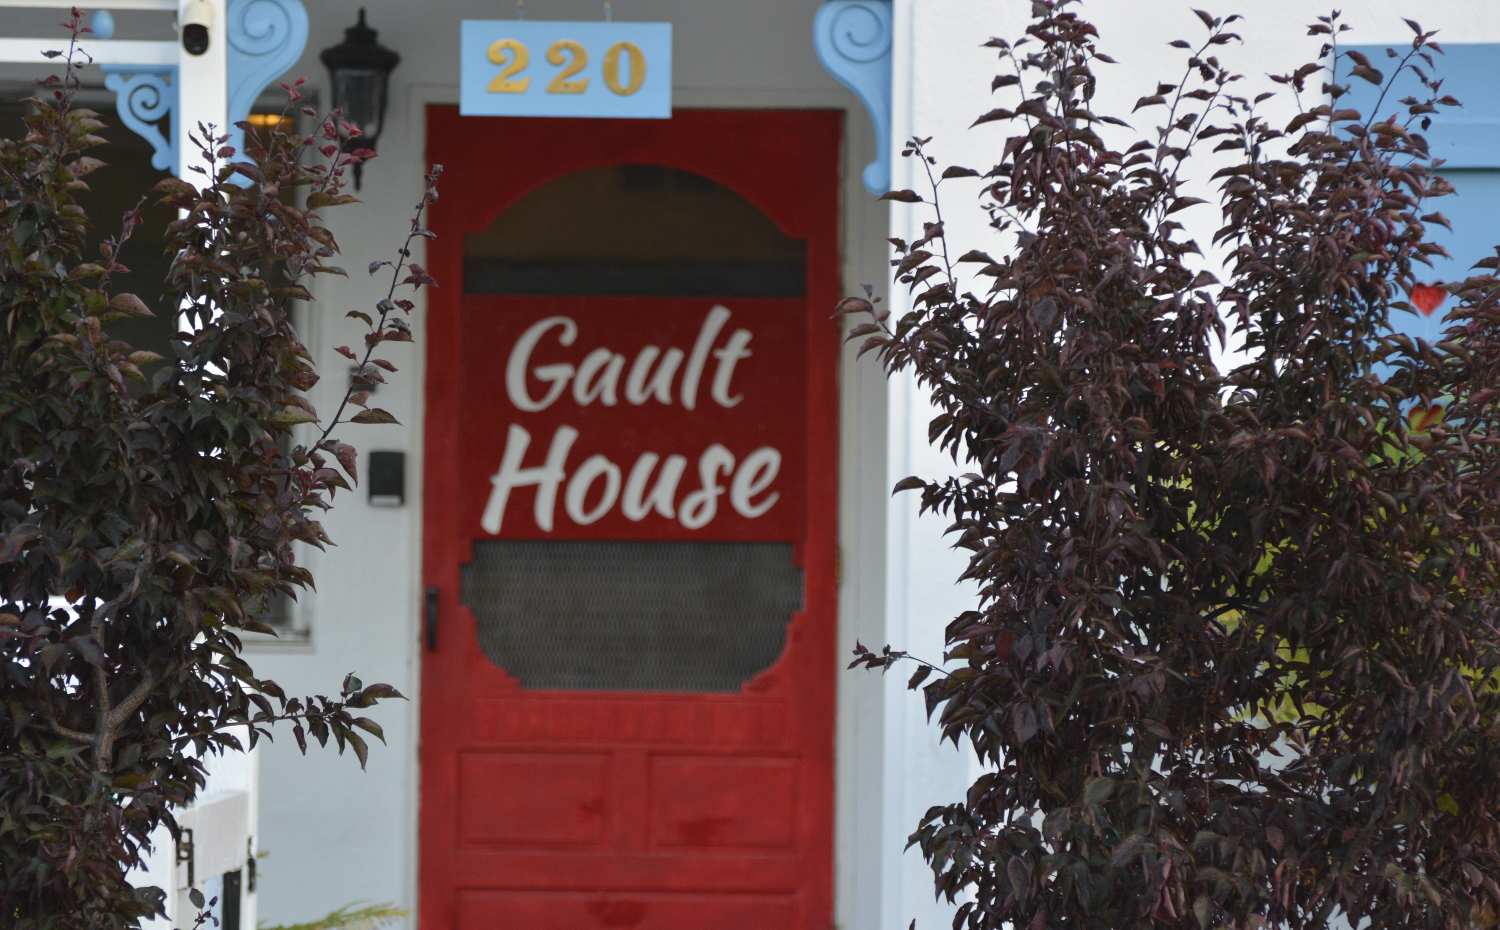 The Gault House - A Sober Living Environment - Responsible Recovery